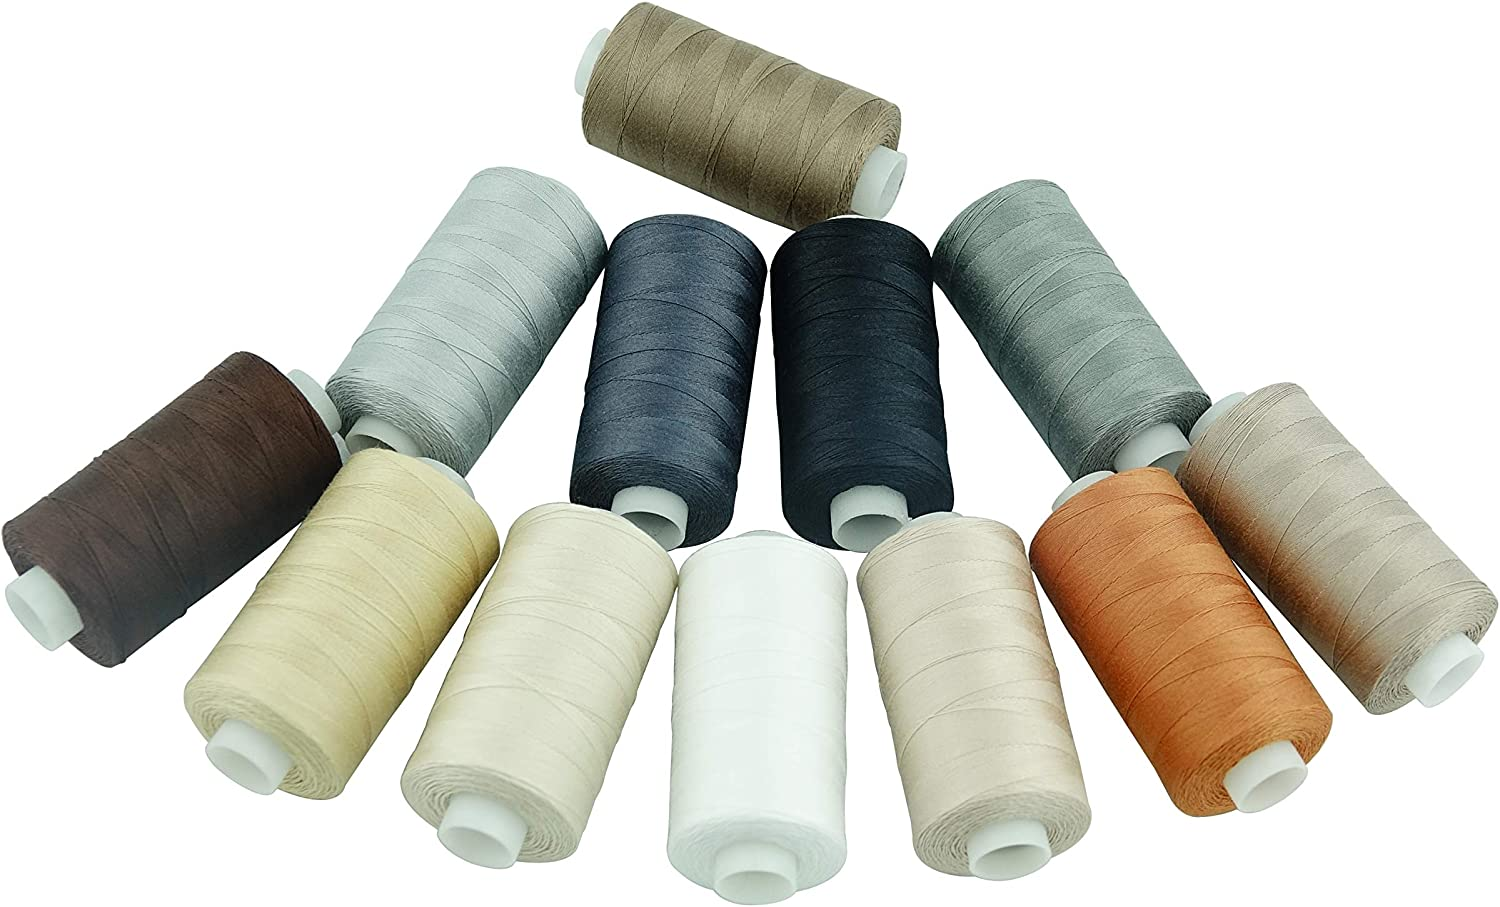 550 Yards Each 20 Colors Simthread 20 Colors All Purposes Cotton Quilting Thread 50s//3 Thread for Piecing Sewing etc